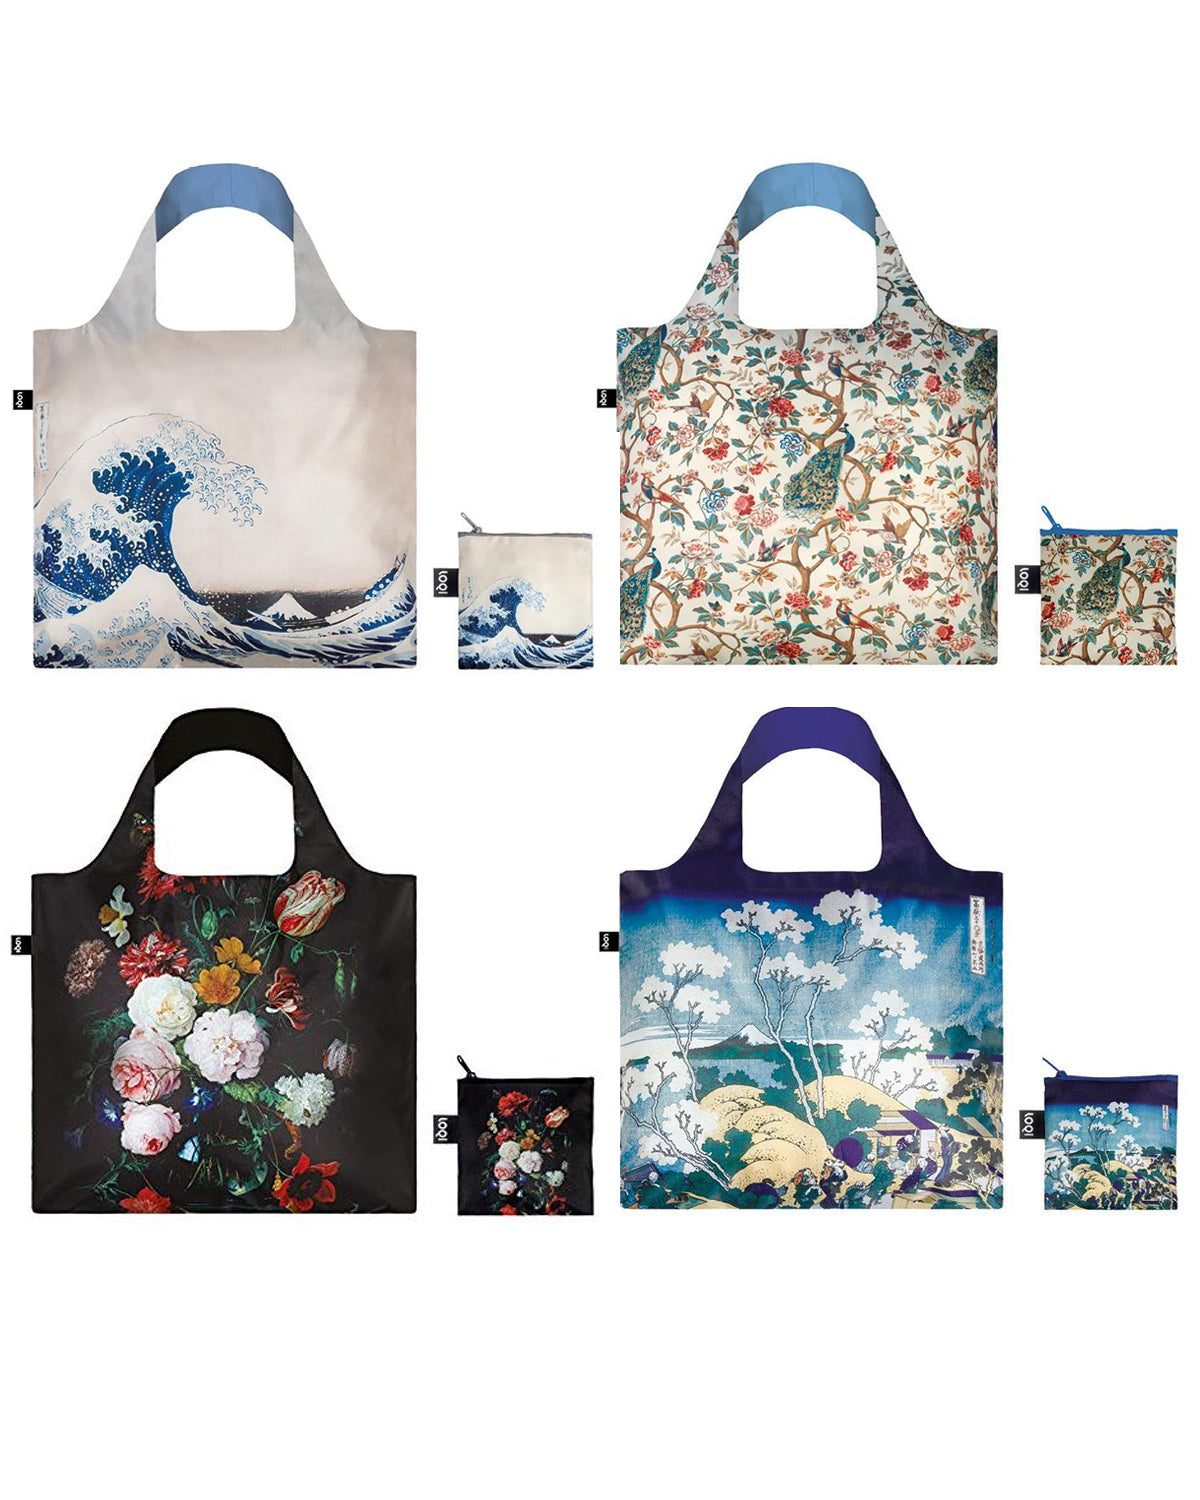 LOQI Museum Collection Pouch Set of 4 Reusable Bags, Japanese & Floral